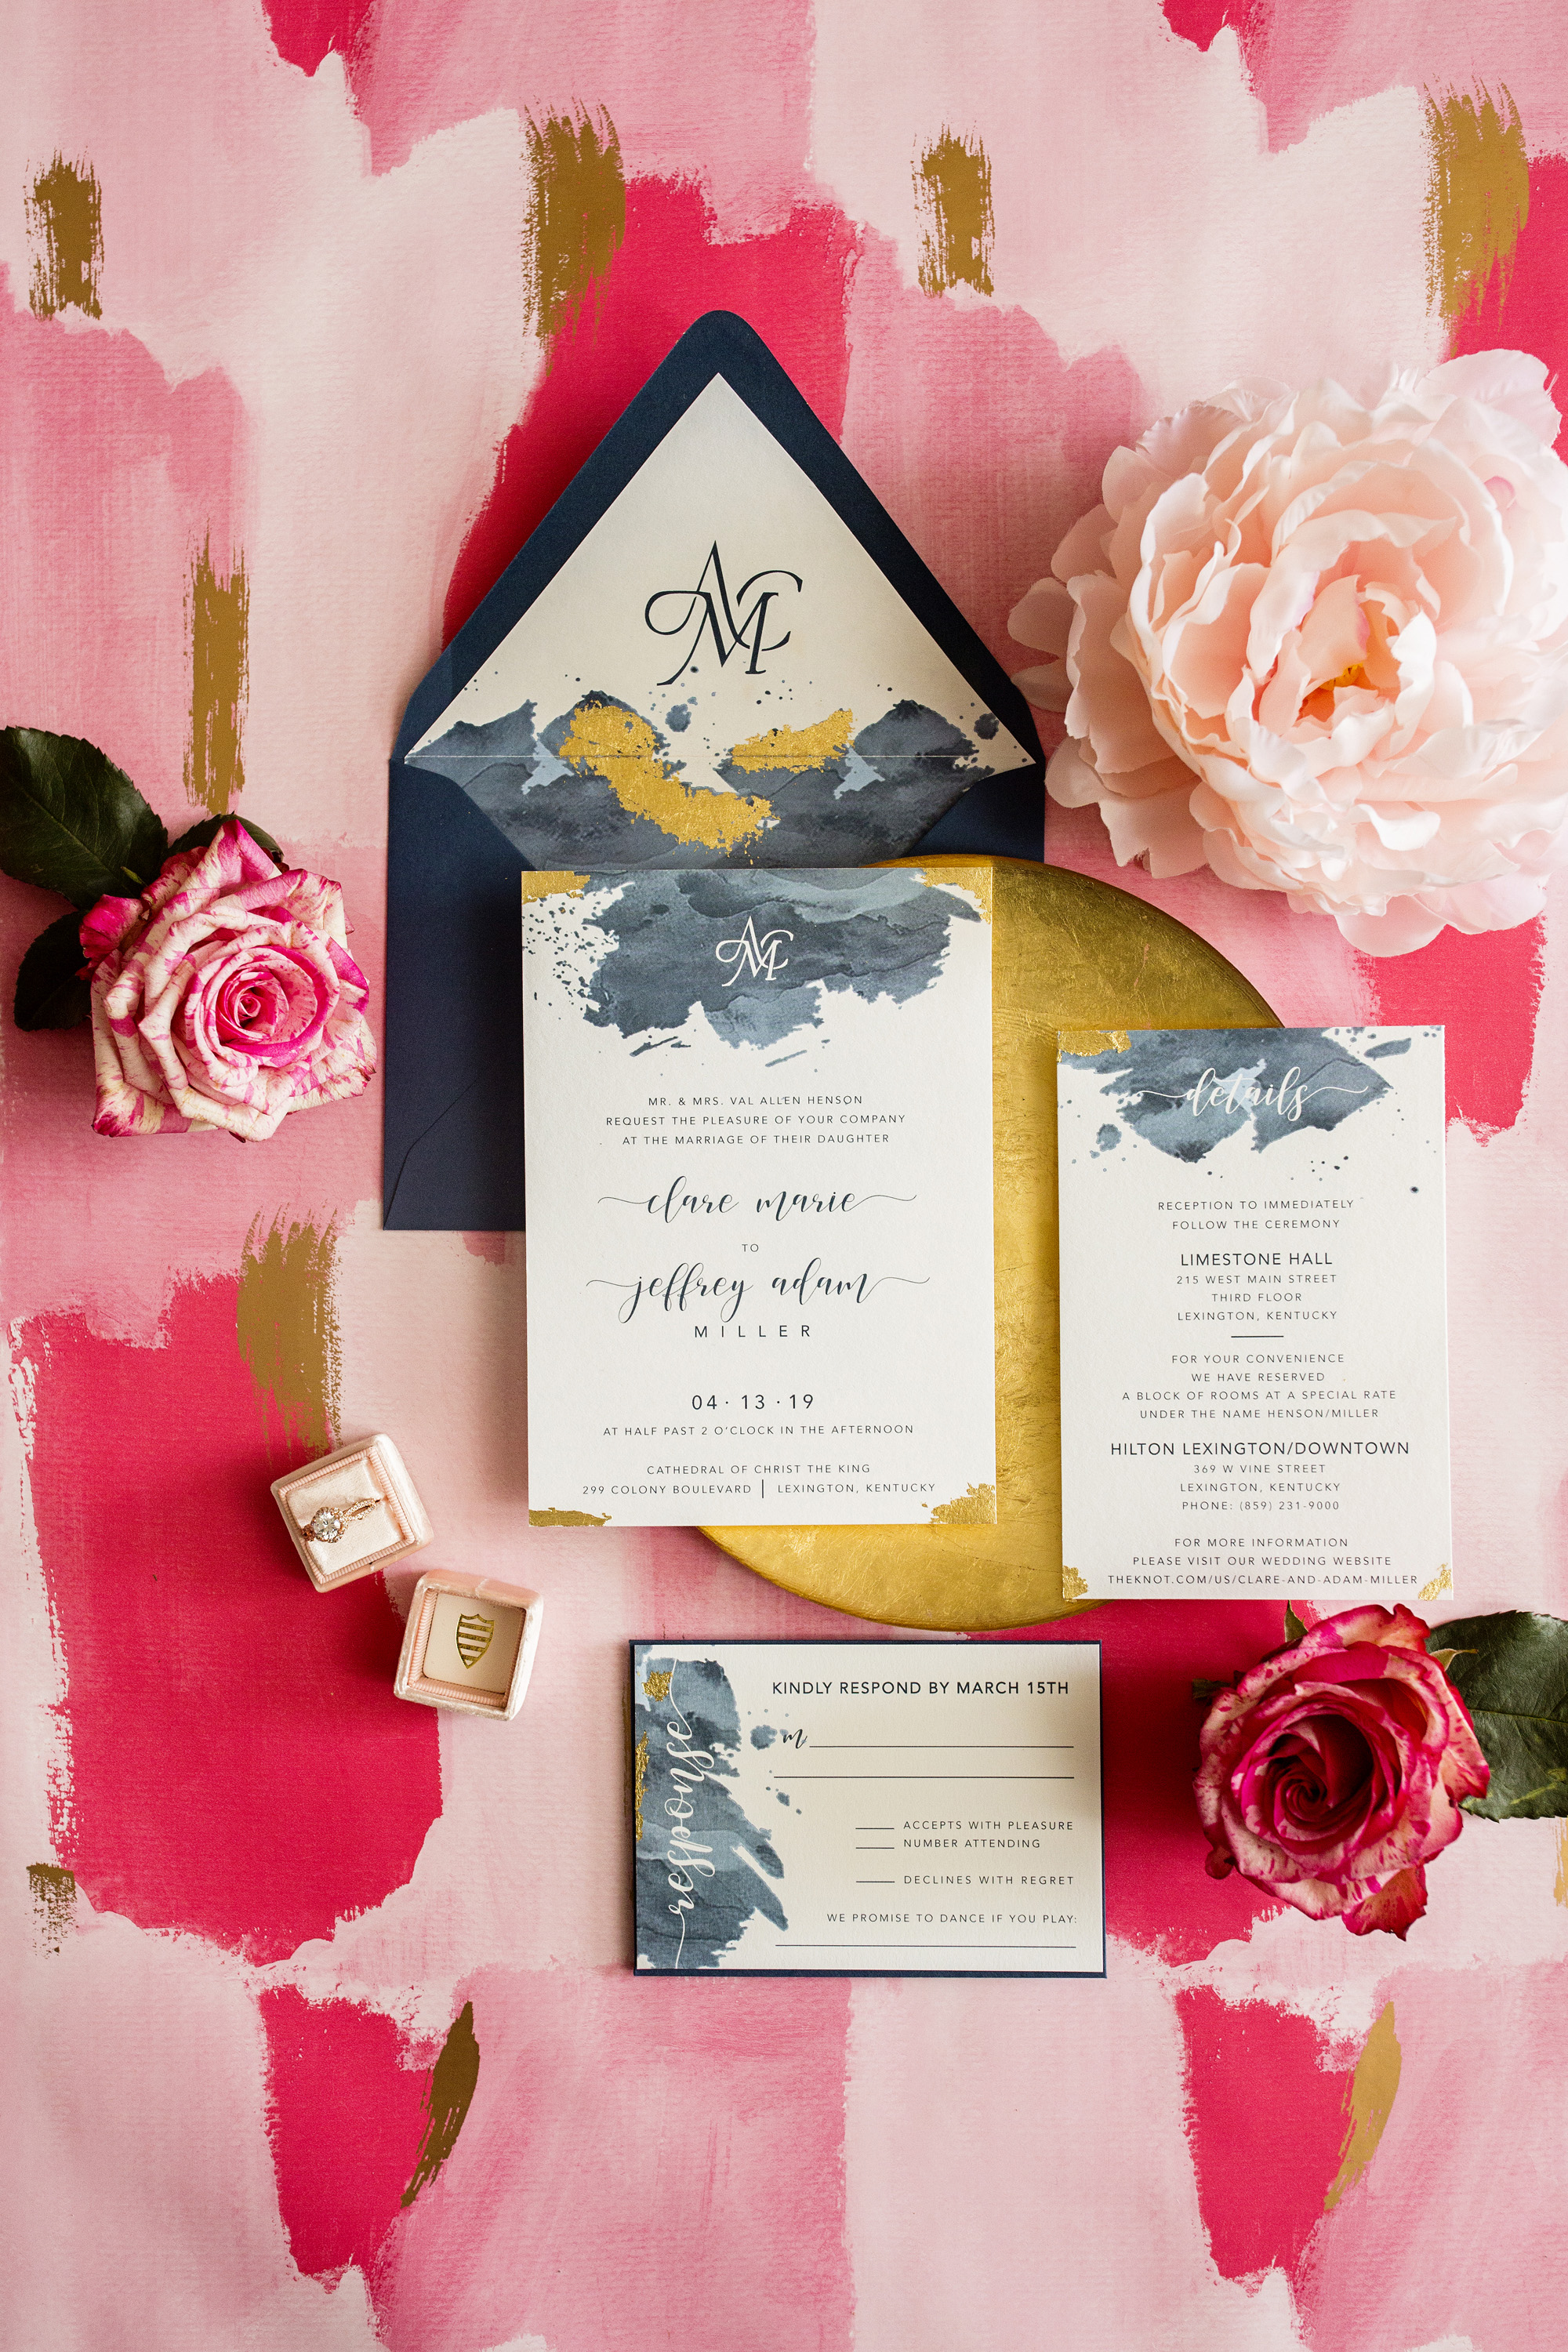 Seriously_Sabrina_Photography_Lexington_Kentucky_Product_Simply_Done_Invites_February_2019_021